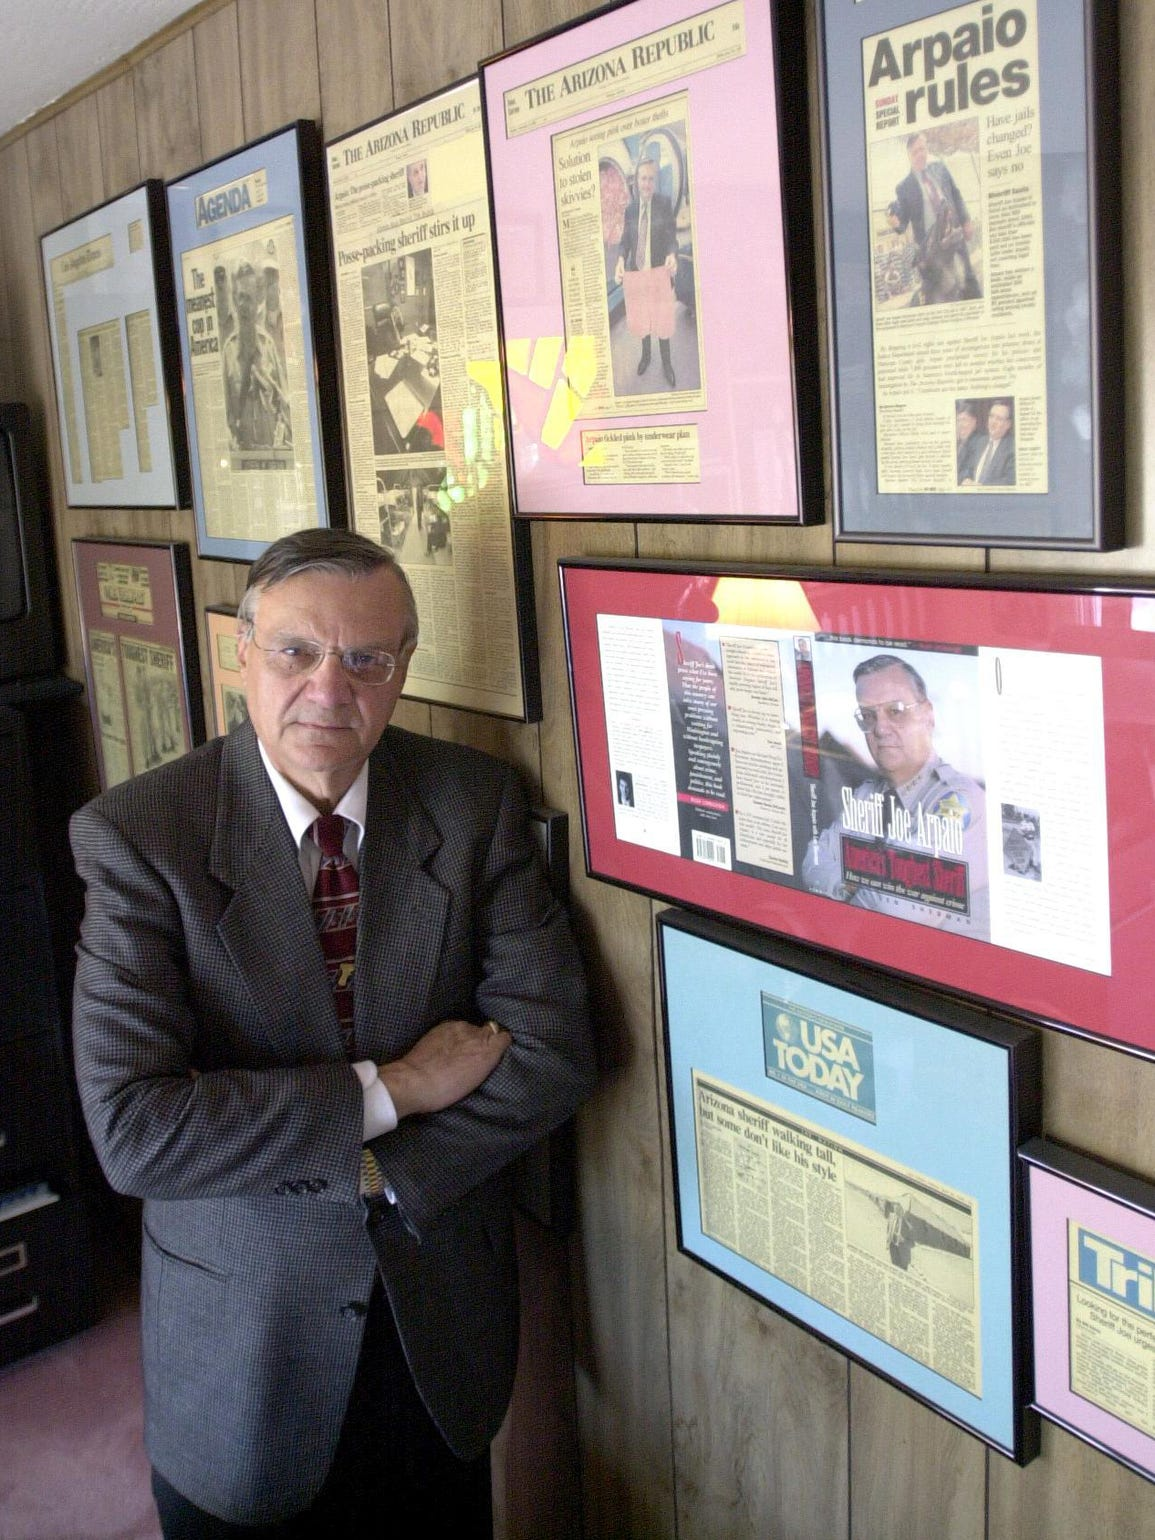 Arpaio poses in his home office in 2001, during his